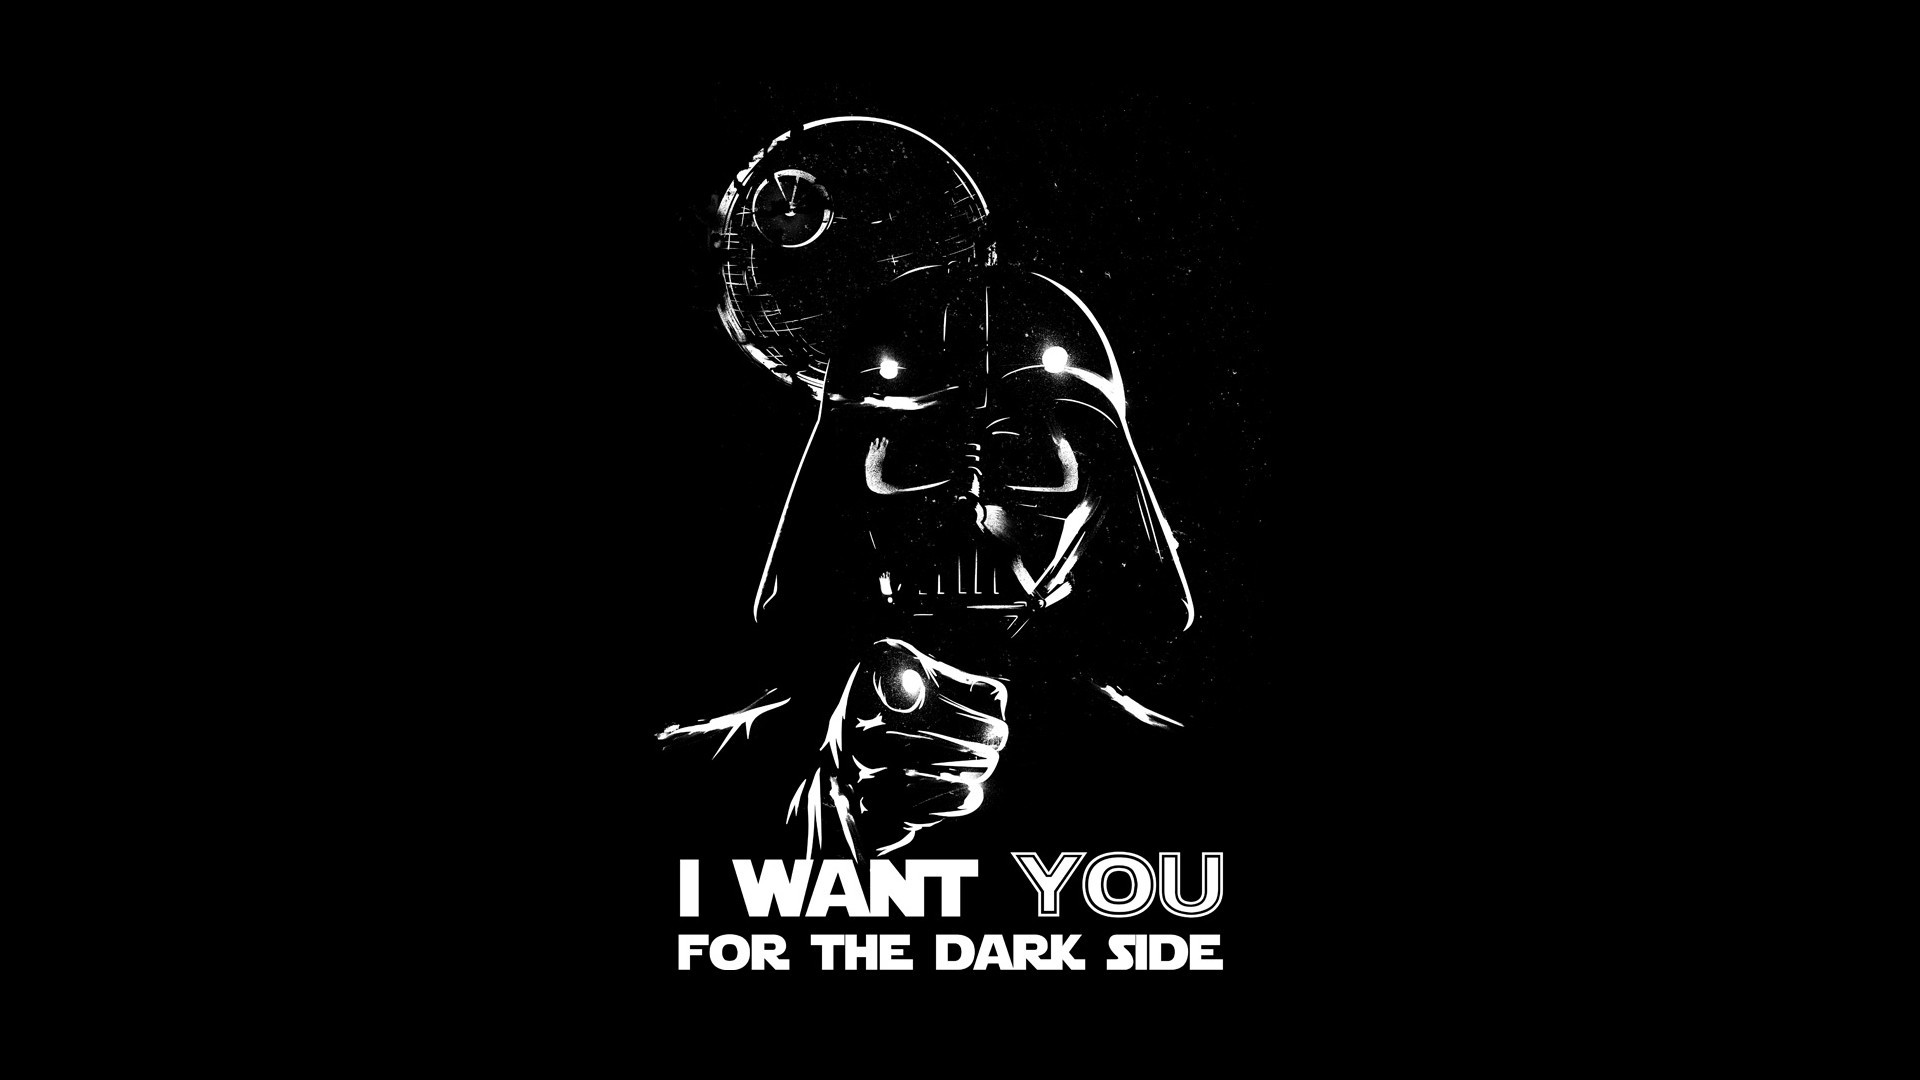 Darth Vader Wallpapers, Pictures, Images